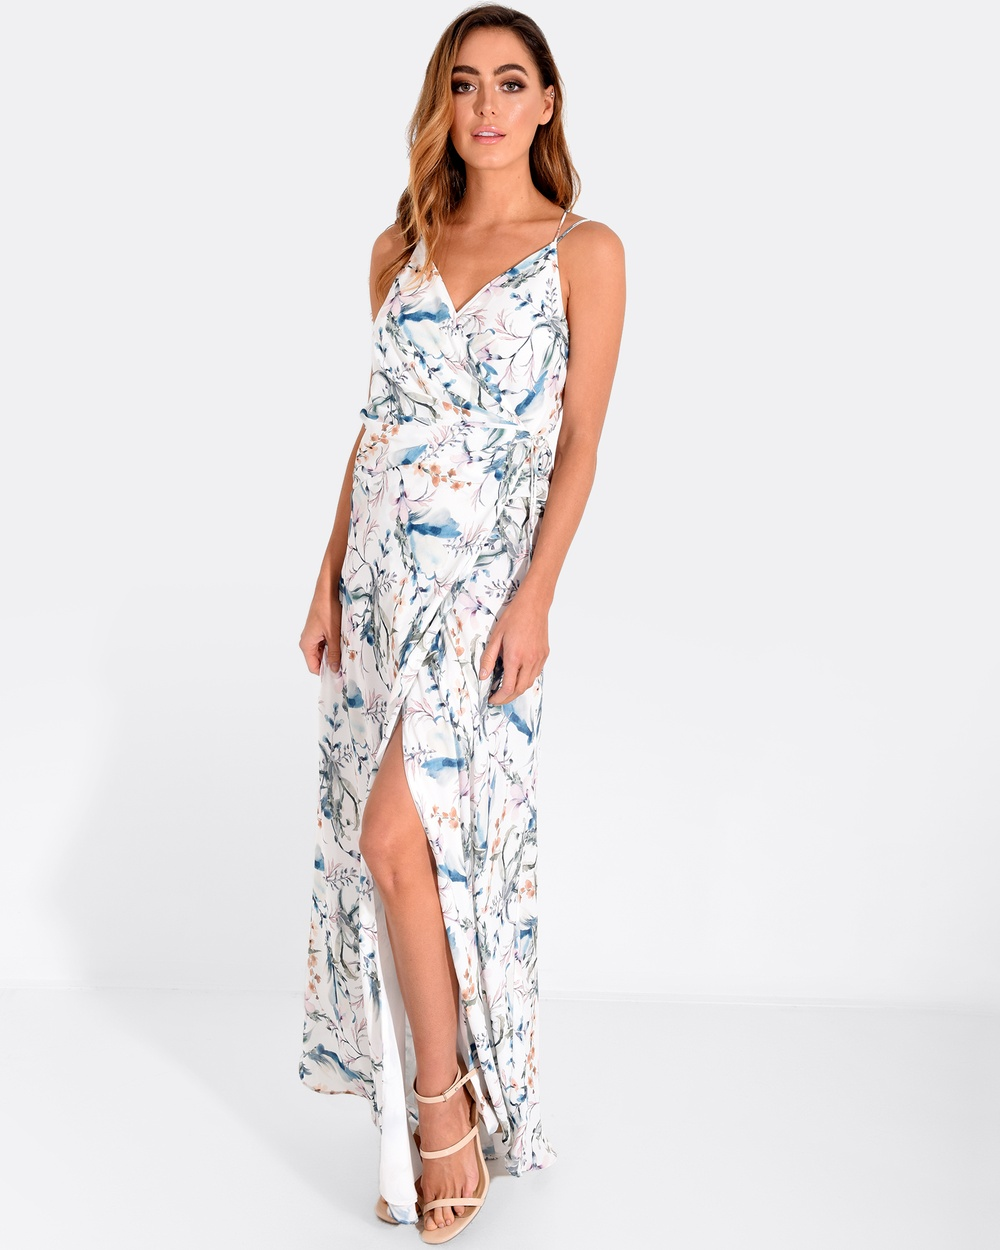 Forcast Ivory Emerson Crossover Maxi Dress